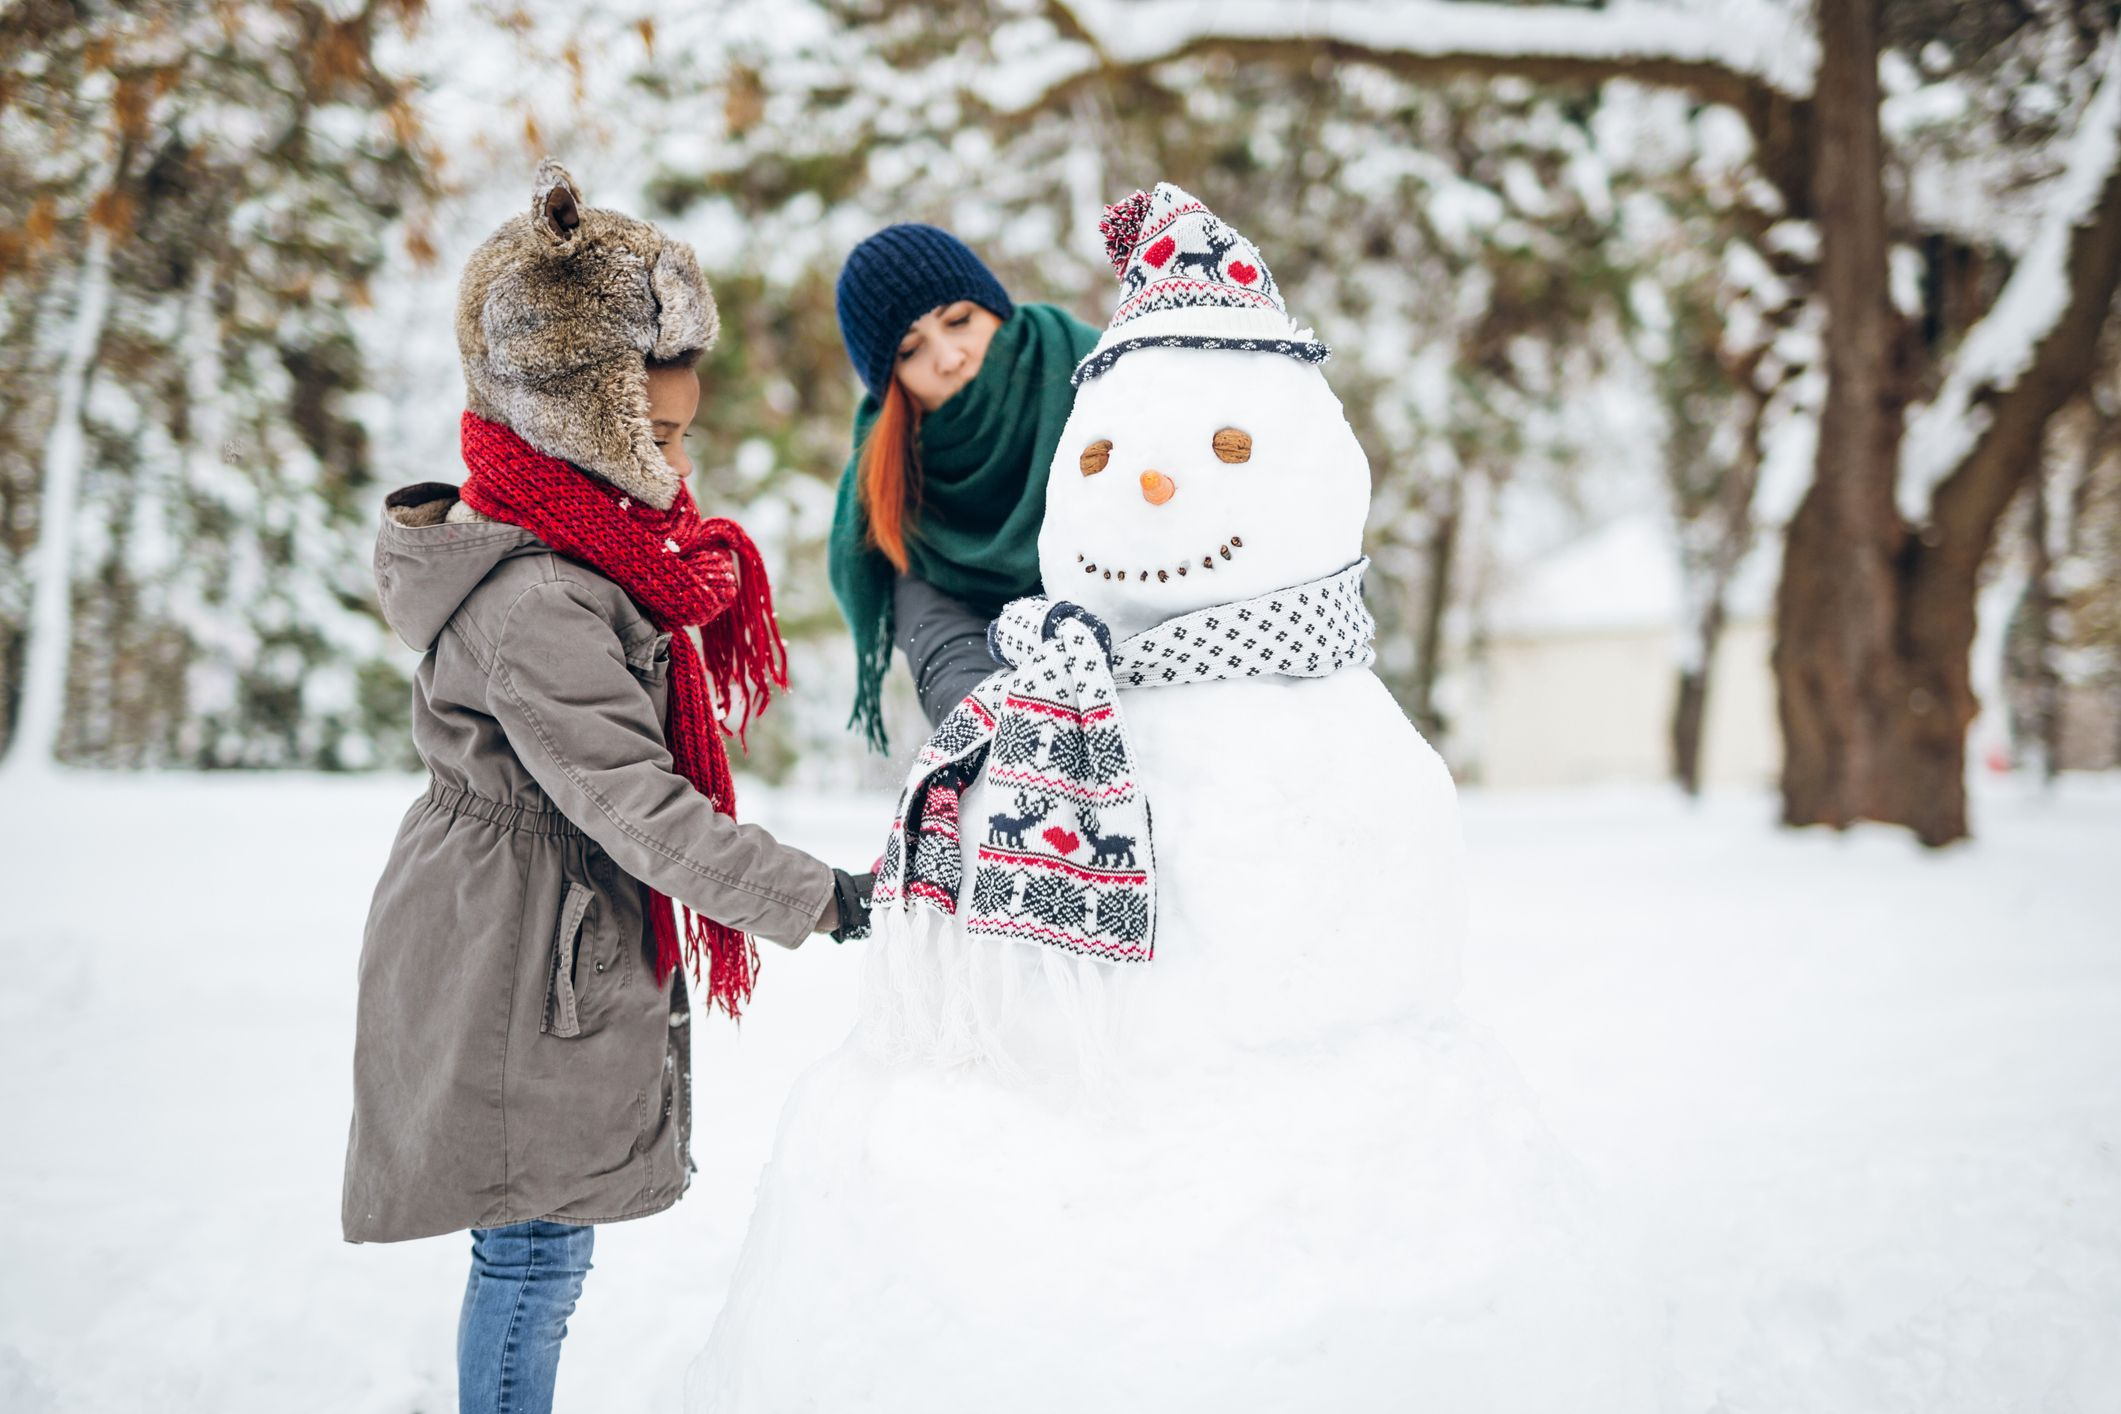 35 Best Winter Captions For Instagram Cute And Funny Winter Instagram Captions